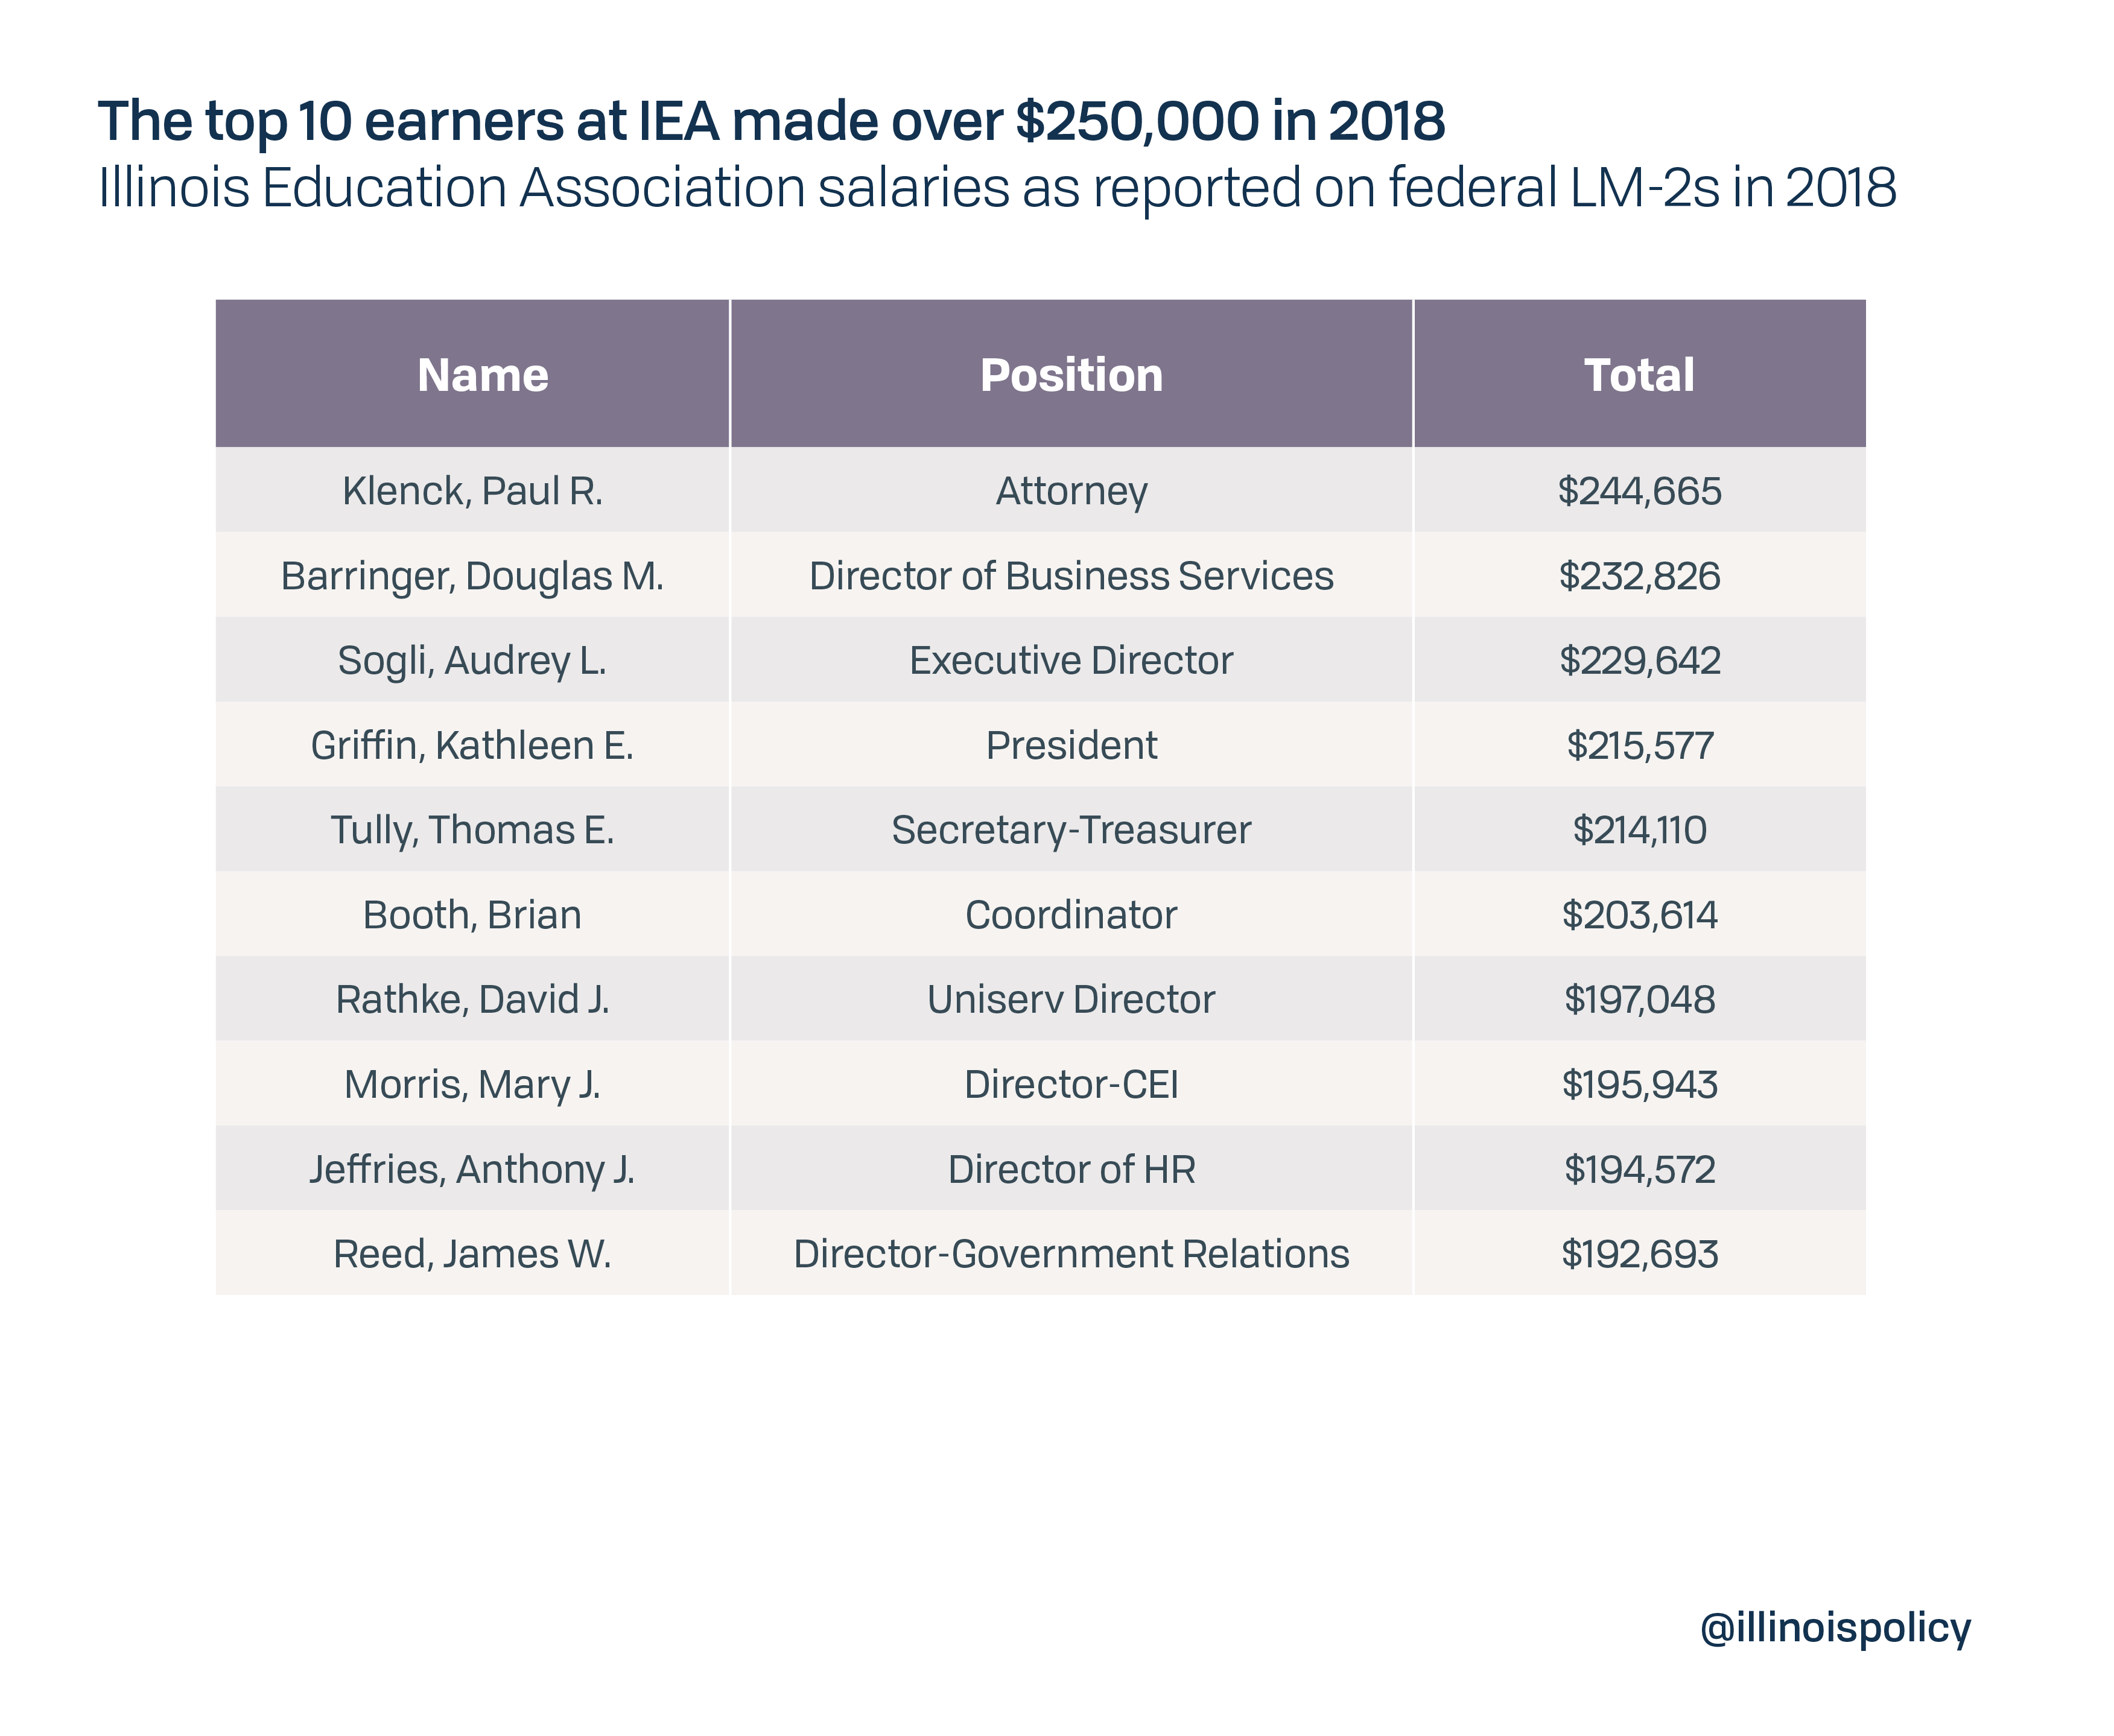 The top 10 earners at IEA made over $250,000 in 2018